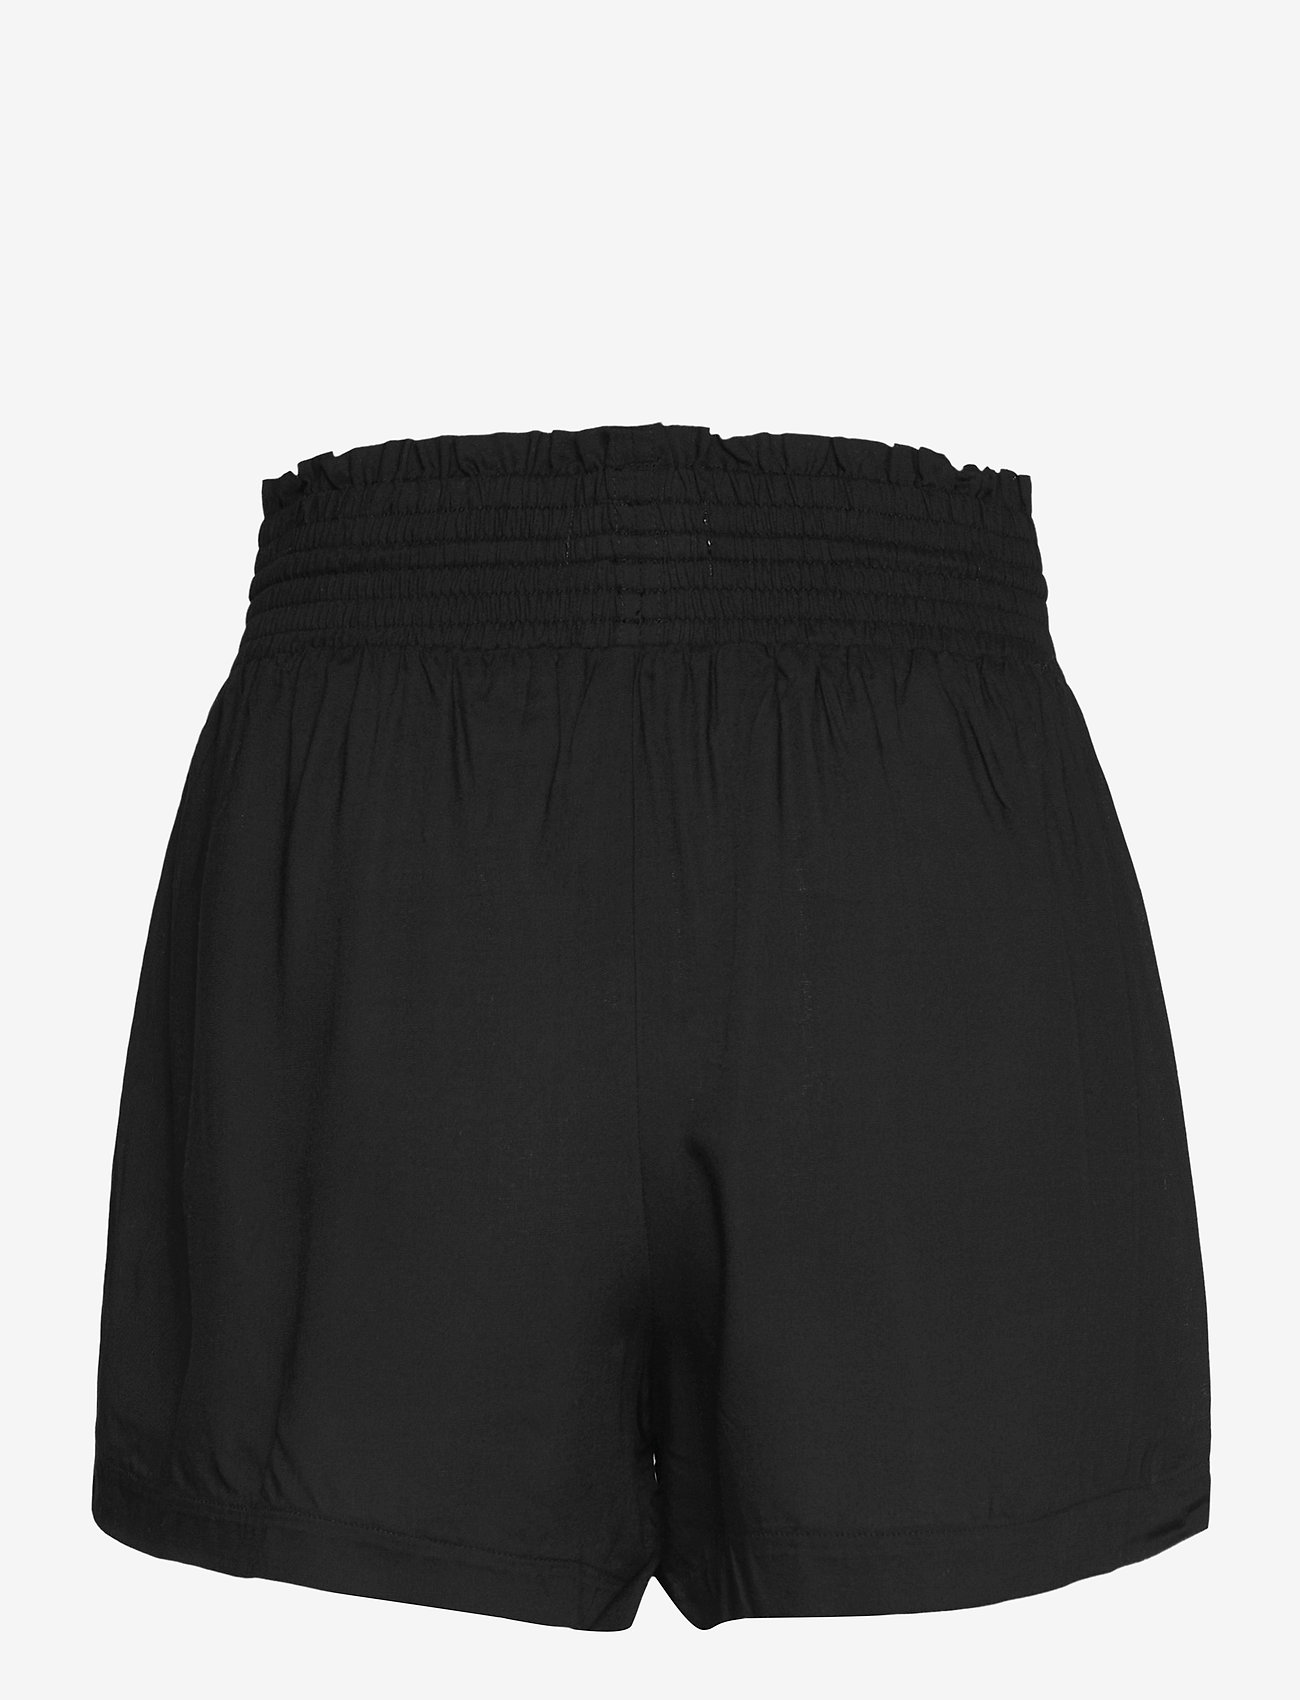 Abercrombie & Fitch - ANF WOMENS SHORTS - shorts casual - rayon pull on short black - 1